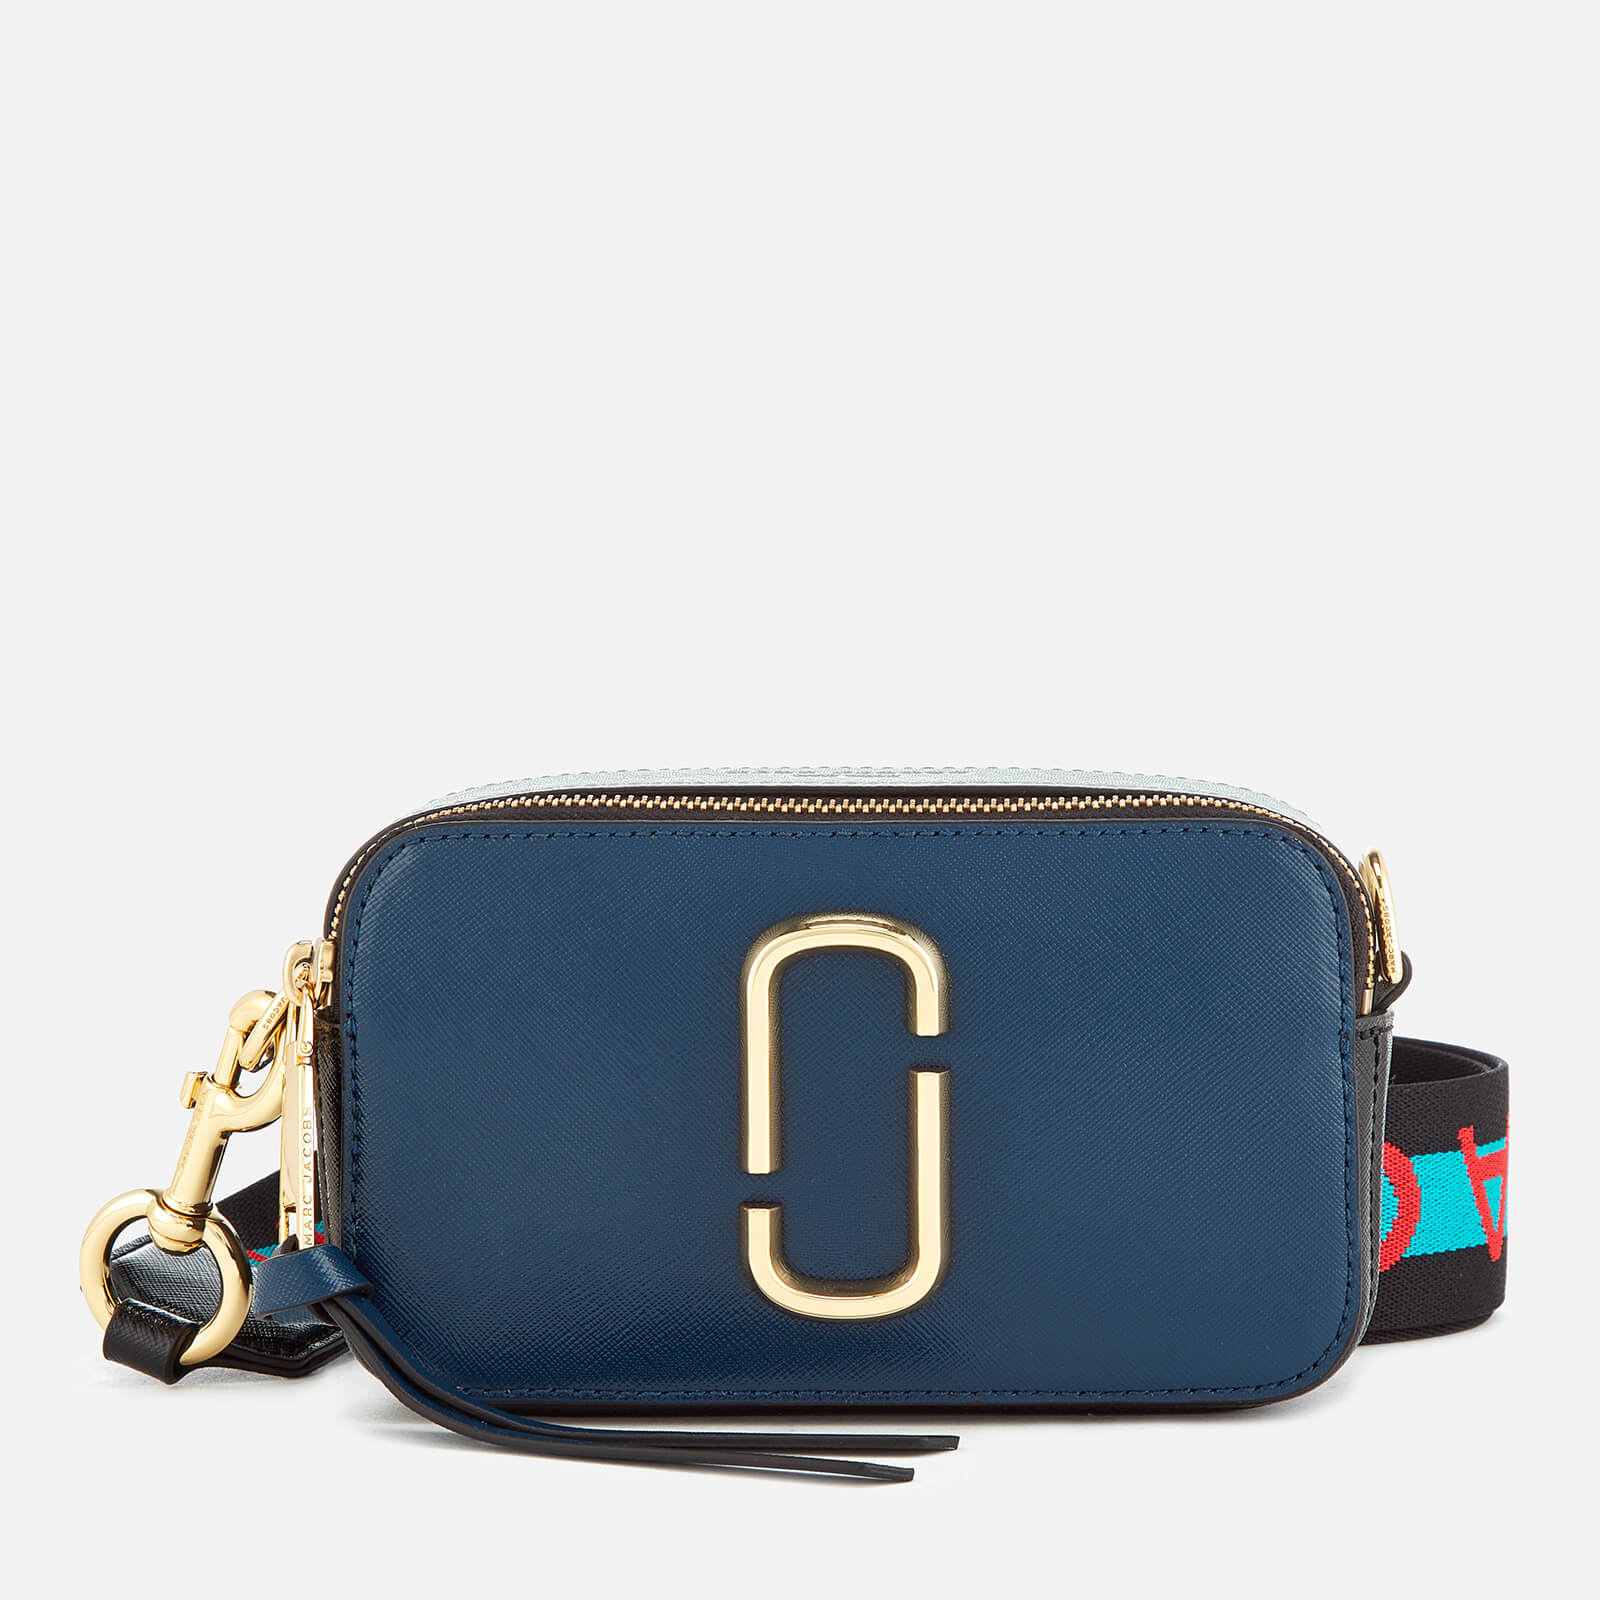 992878806038 Marc Jacobs Women s Snapshot Cross Body Bag - Blue Sea Multi - Free ...